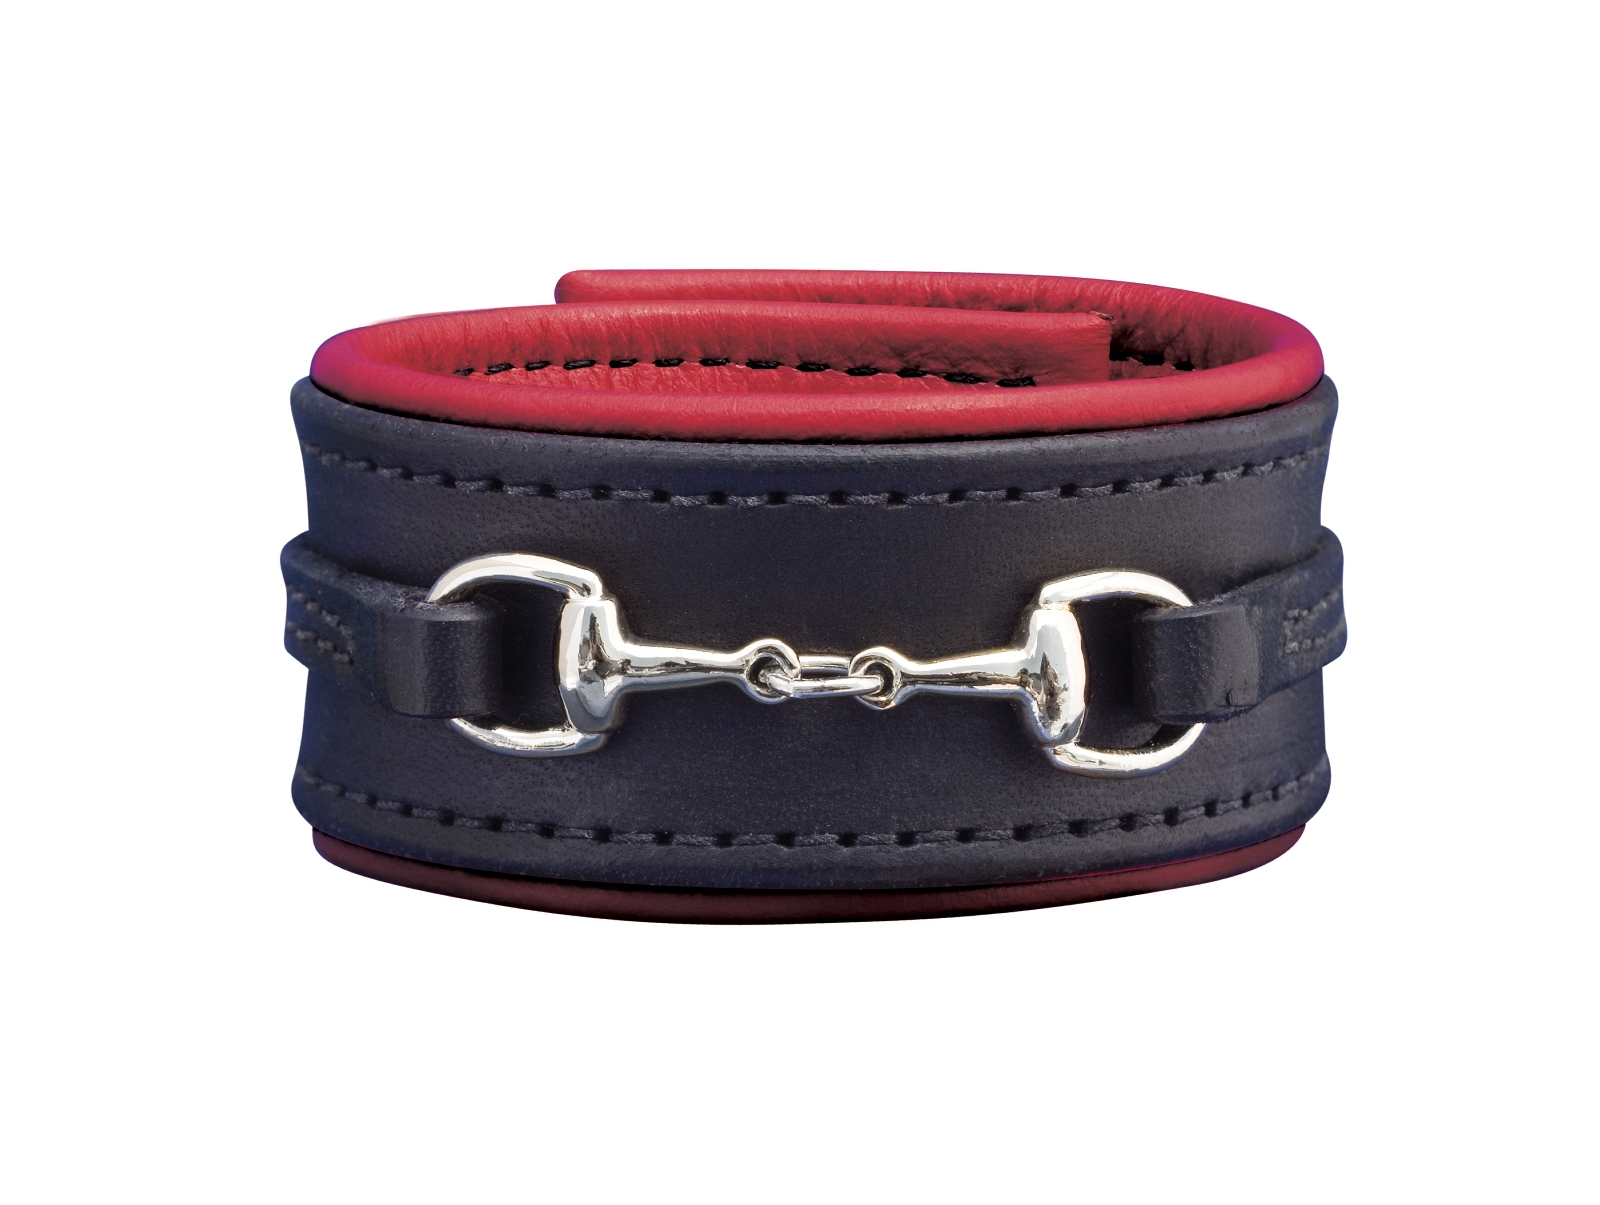 Perri's Padded Leather Bit Bracelet